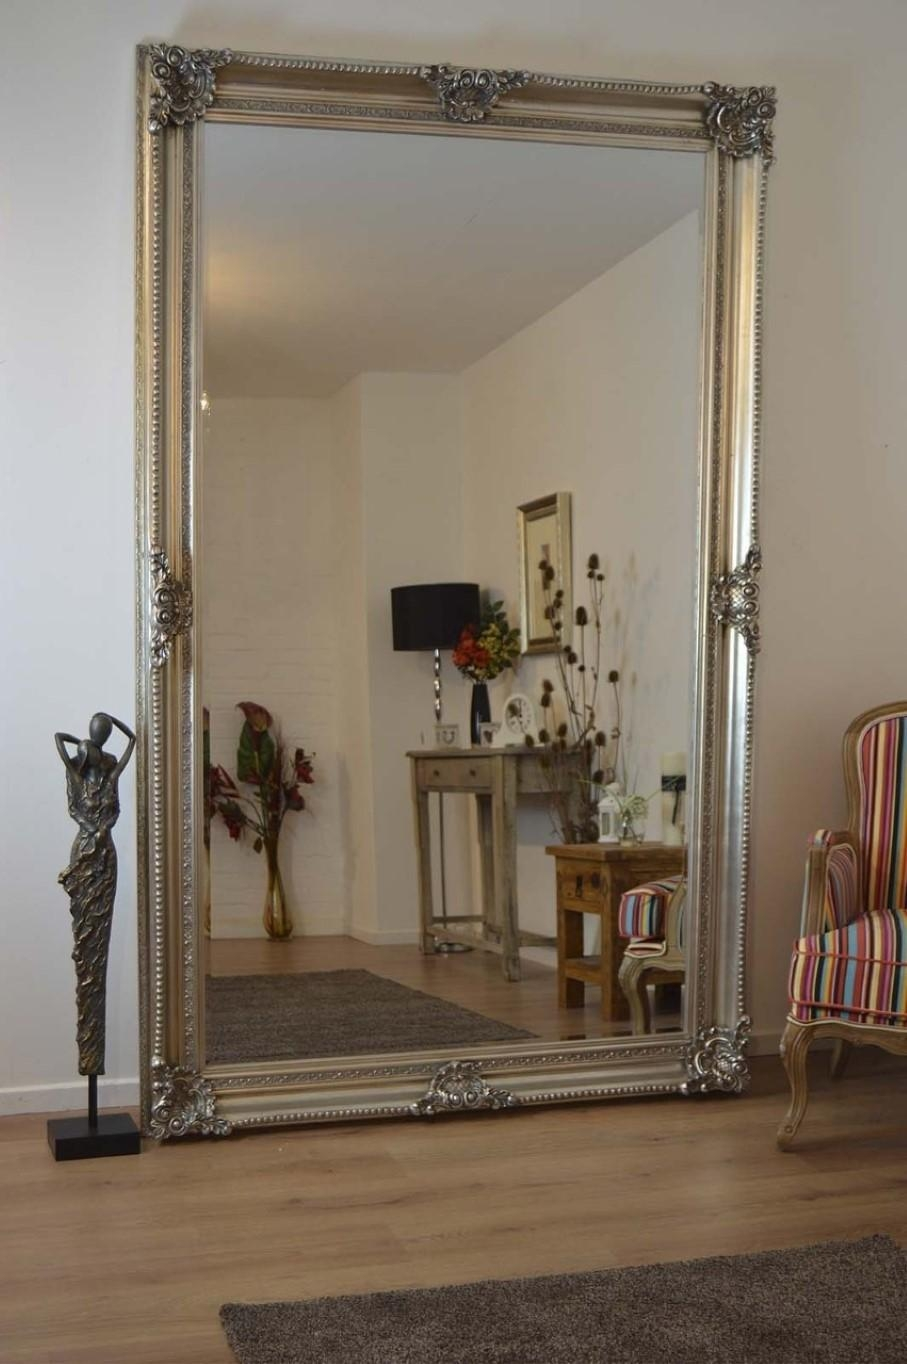 Extra Large Ornate Floor Mirror | Floor Decoration Inside Extra Large Ornate Mirror (Image 5 of 20)